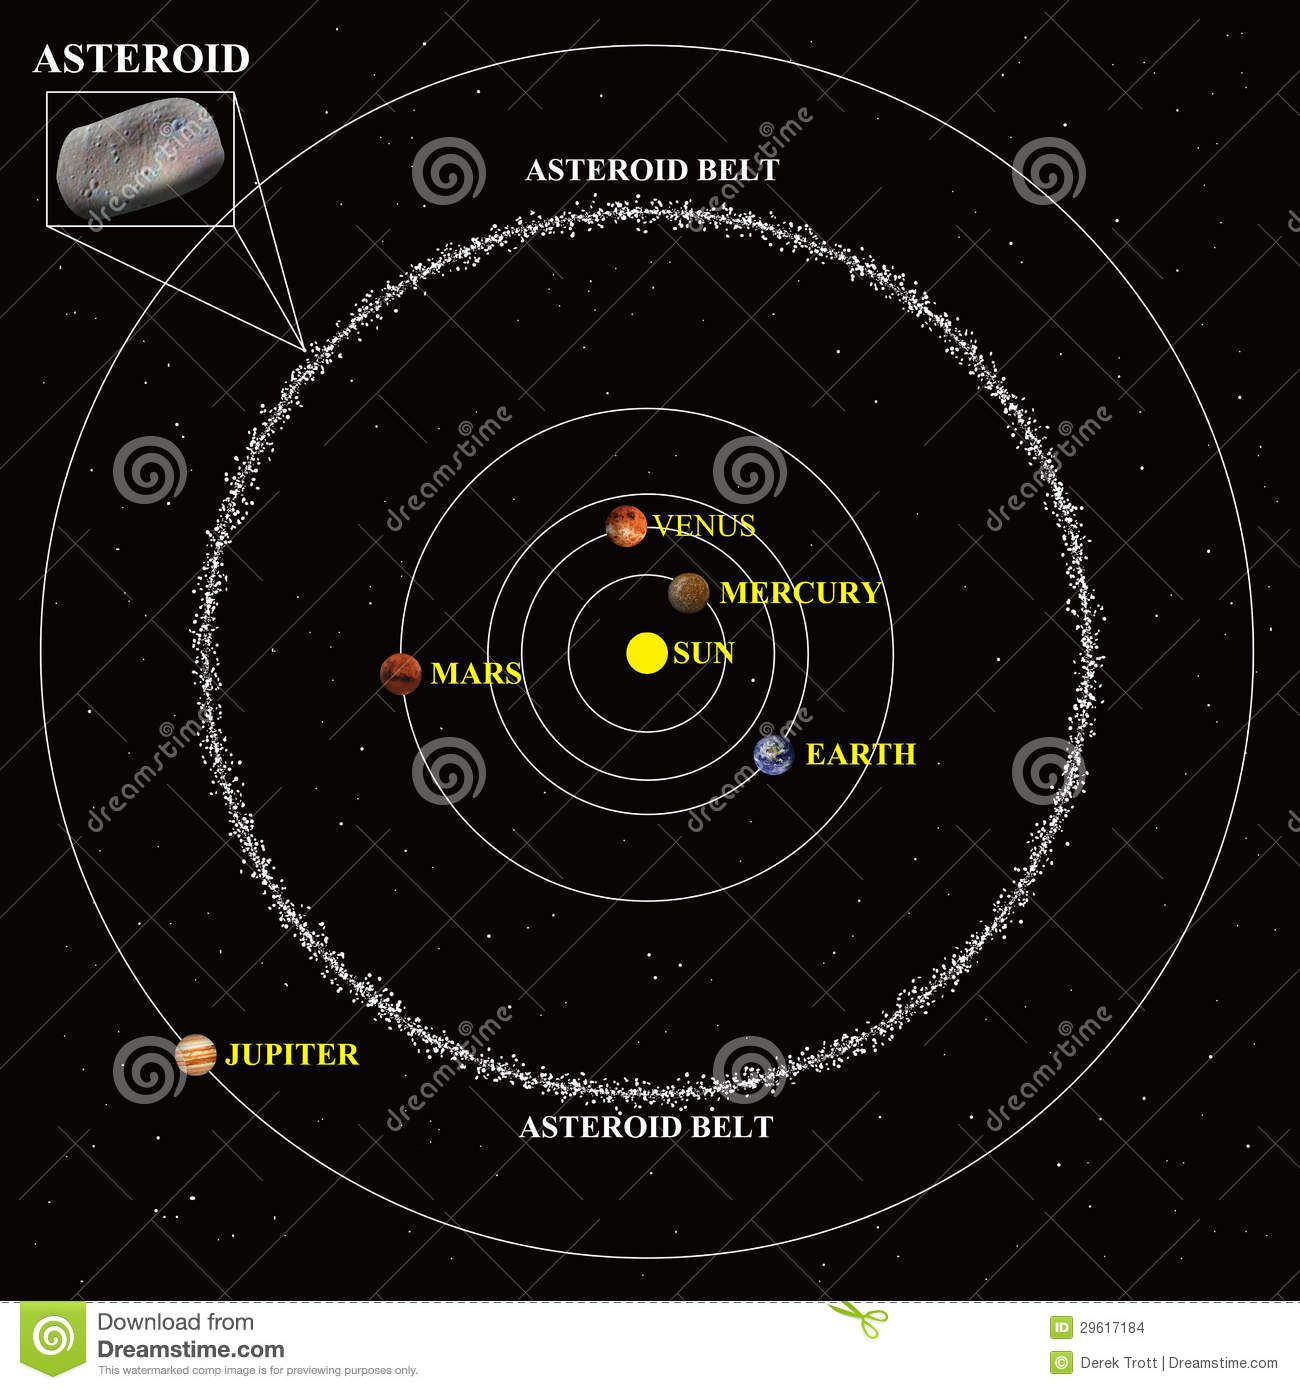 Asteroid belt diagram stock photo image of del69 neptune 29617184 asteroid belt diagram pooptronica Images